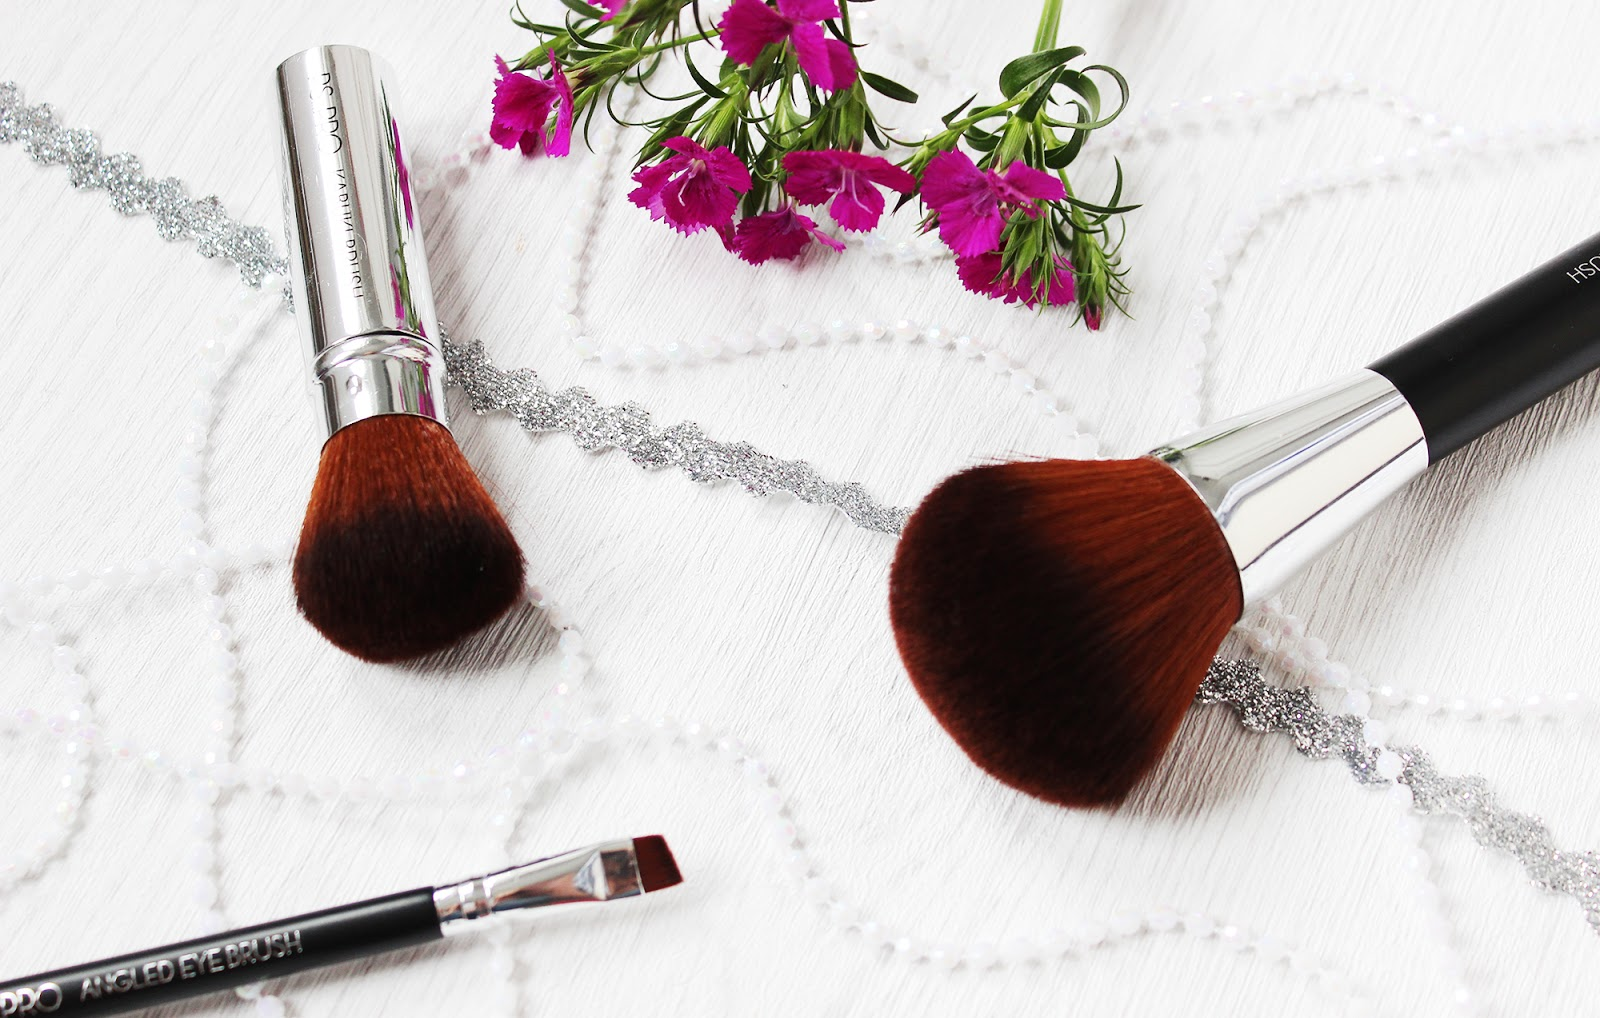 Primark PS Pro Makeup brushes review